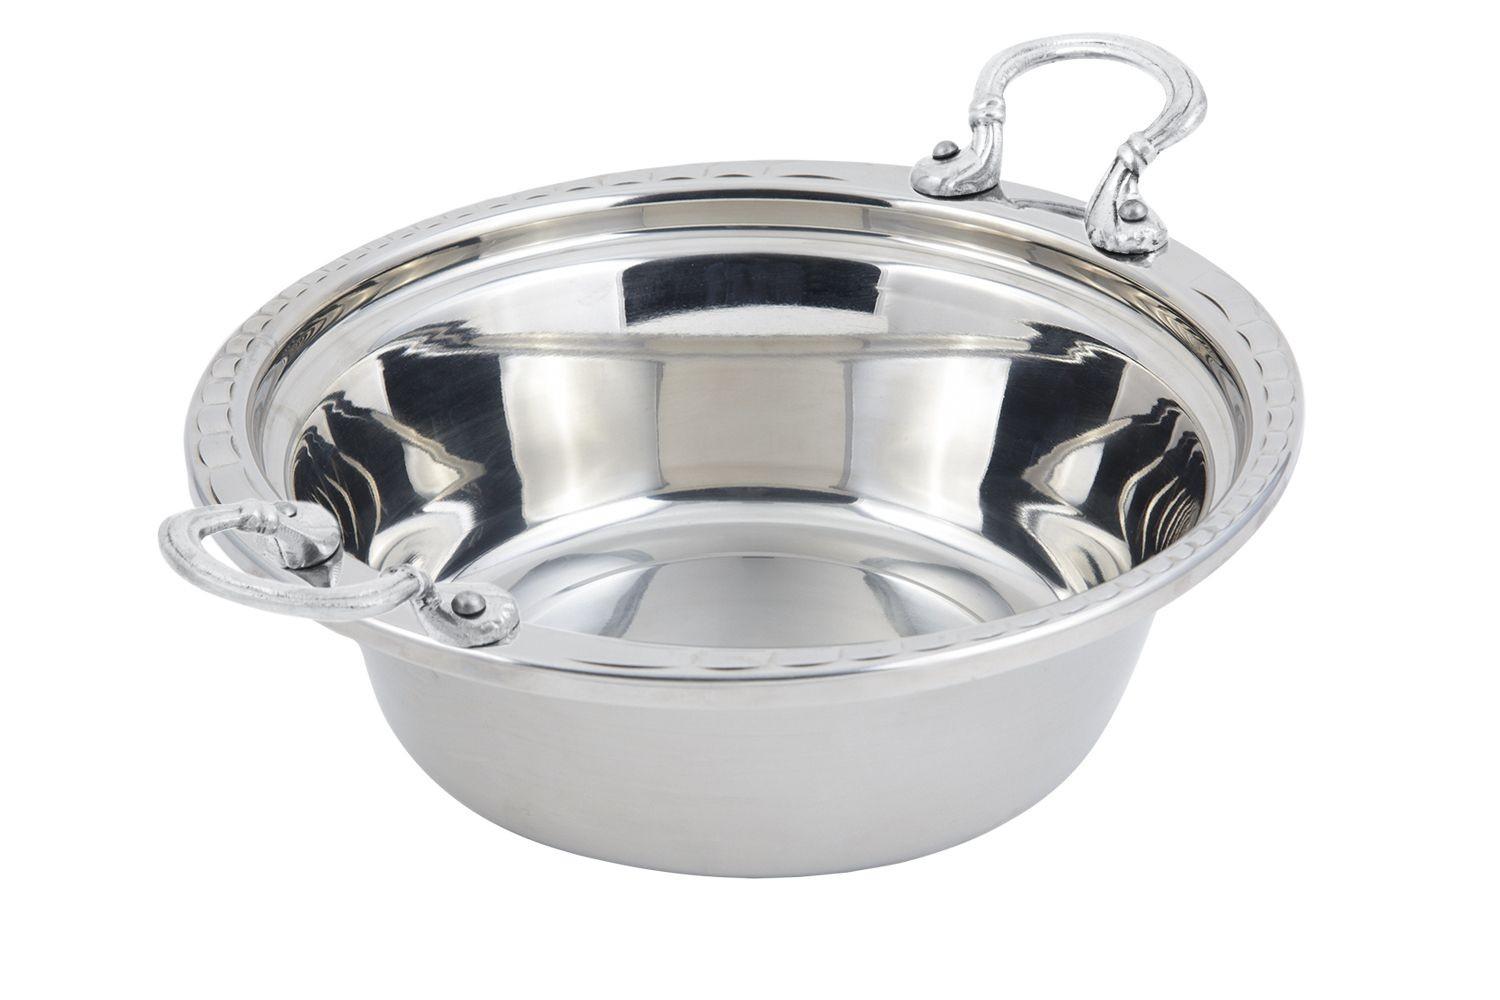 Bon Chef 5656HRSS Arches Design Casserole Dish with Round Handles, 4 Qt.